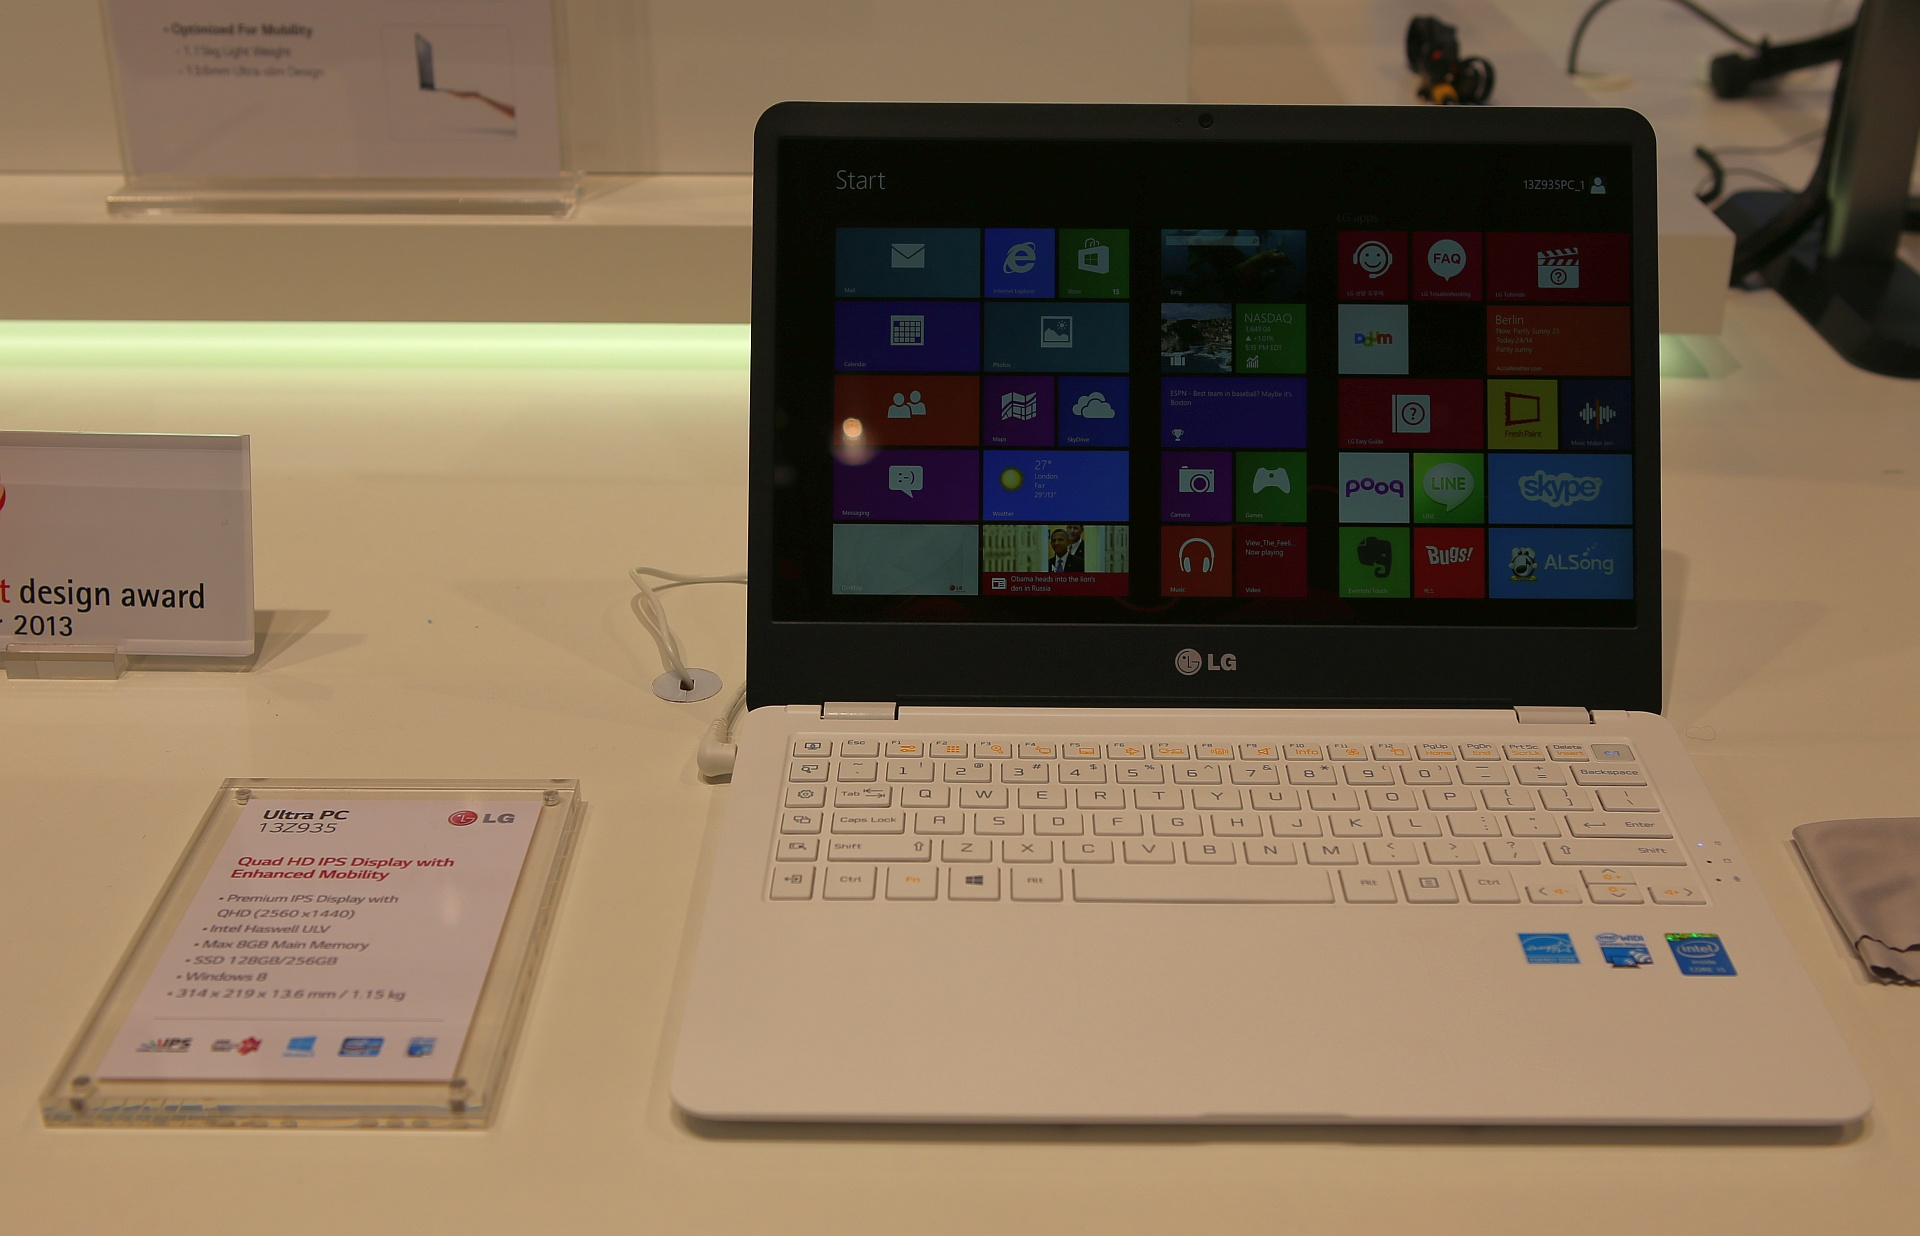 "LG Ultra PC si TabBook: ""Mic si performant"" este definitia unui ultrabook"